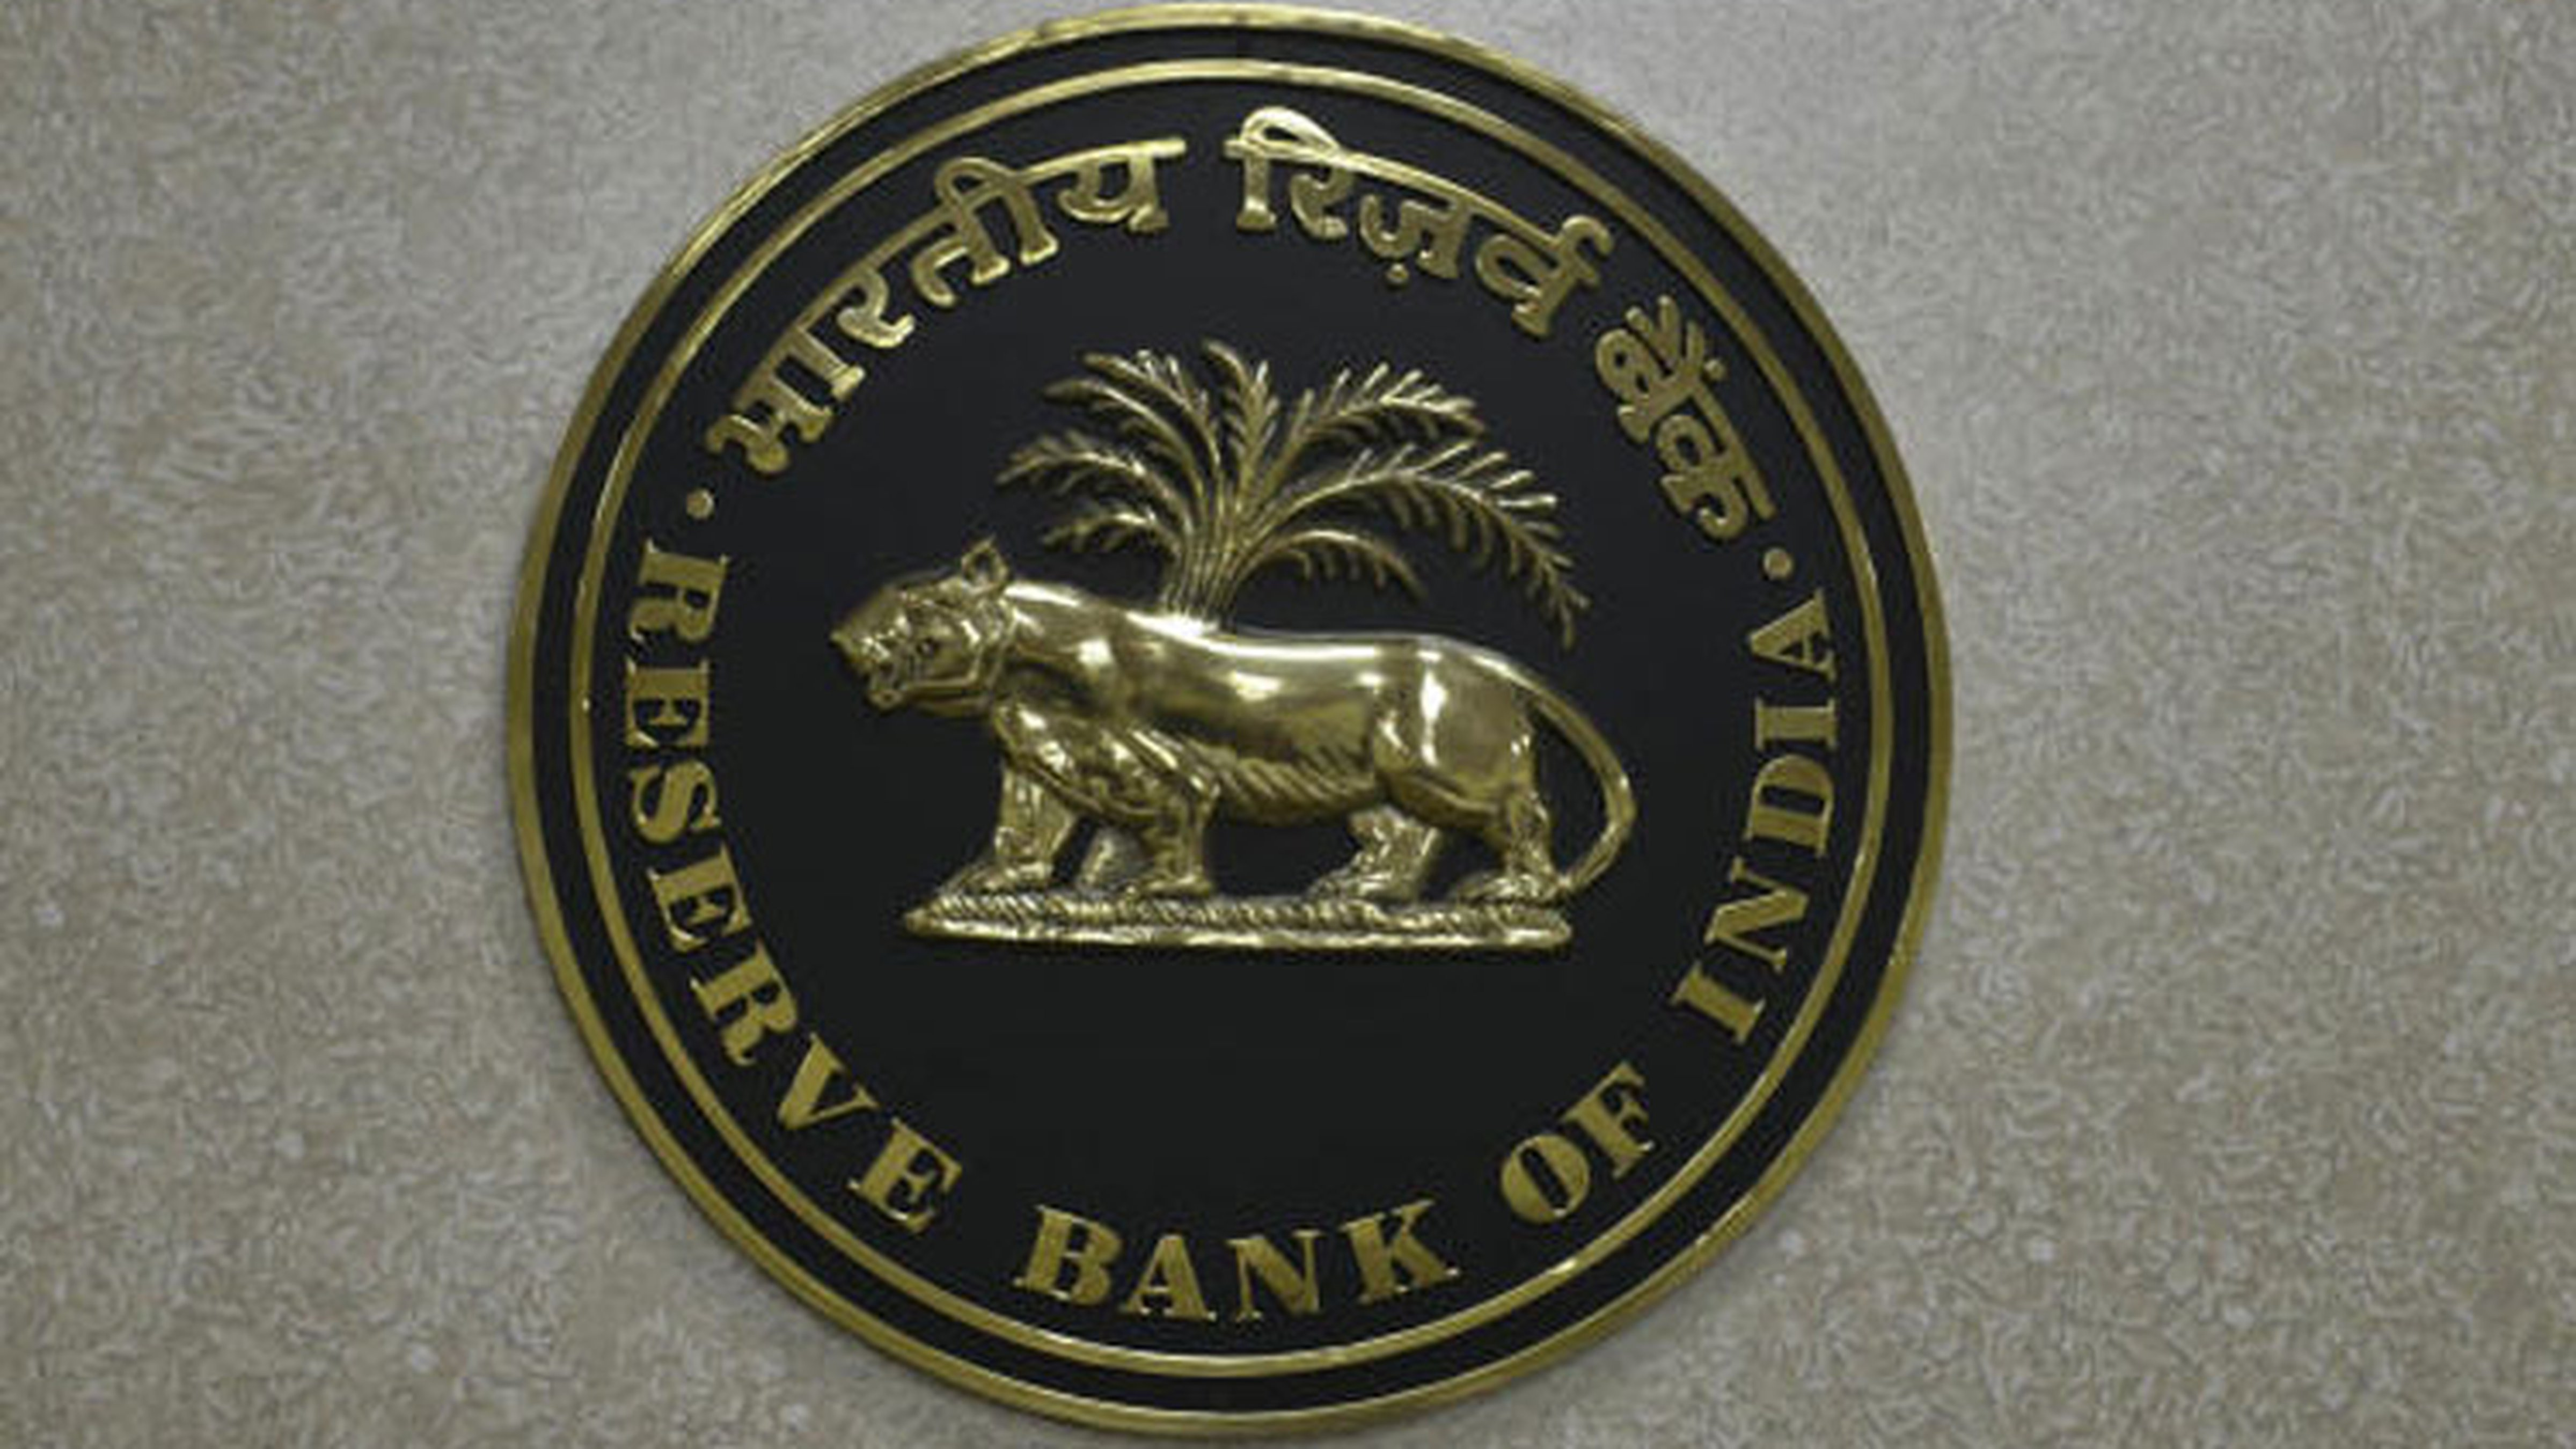 The RBI said that consumer confidence collapsed in May with the current situation index (CSI) touching a historic low and the one-year ahead future expectations index (FEI) also recording a sharp fall, entering the zone of pessimism.